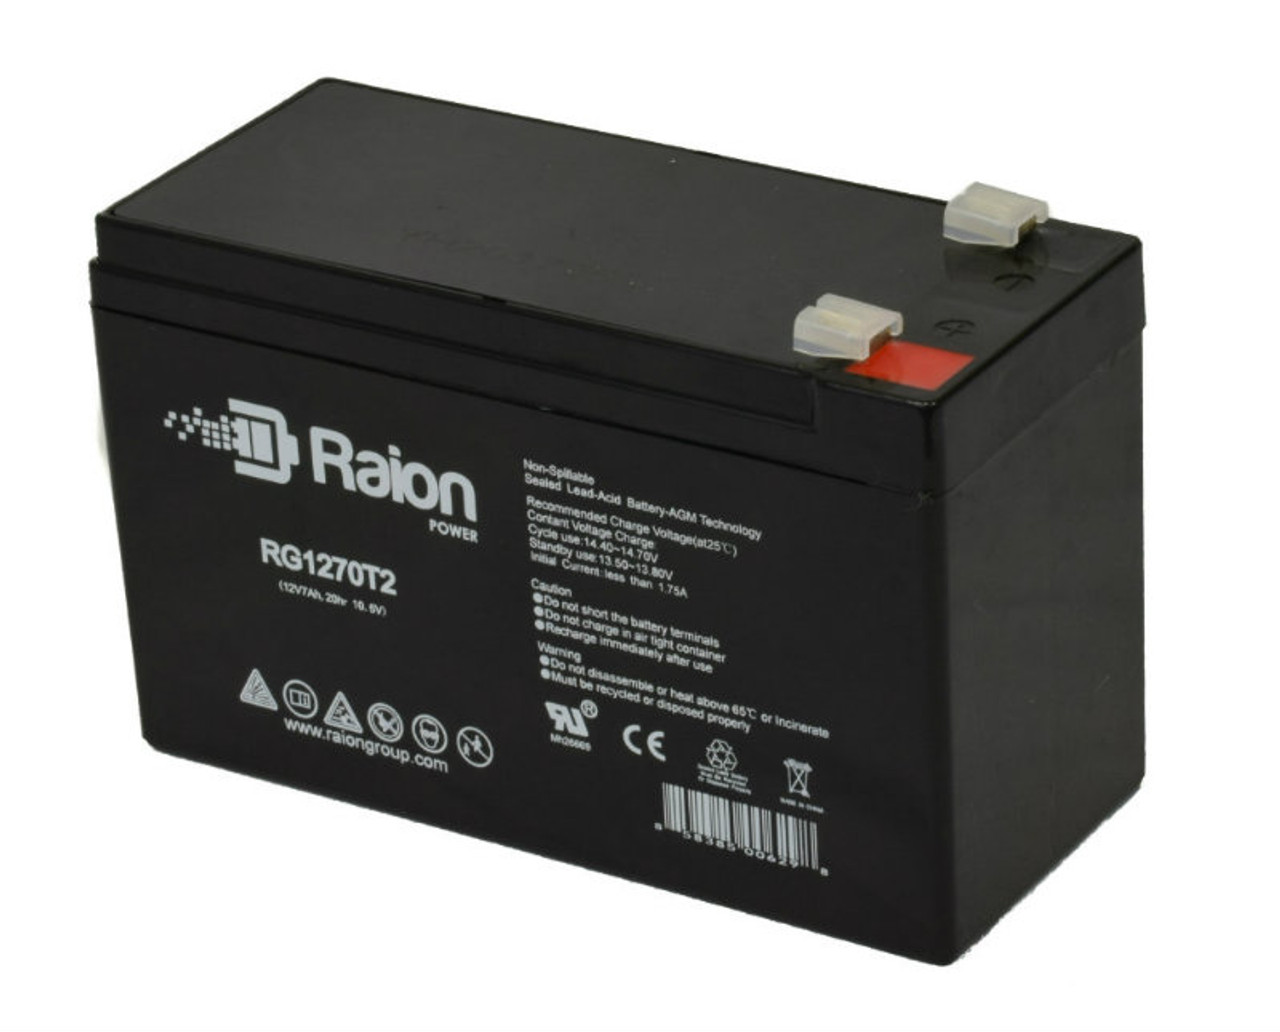 Raion Power RG1270T1 Replacement Battery for Jupiter Batteries JB12-007F1